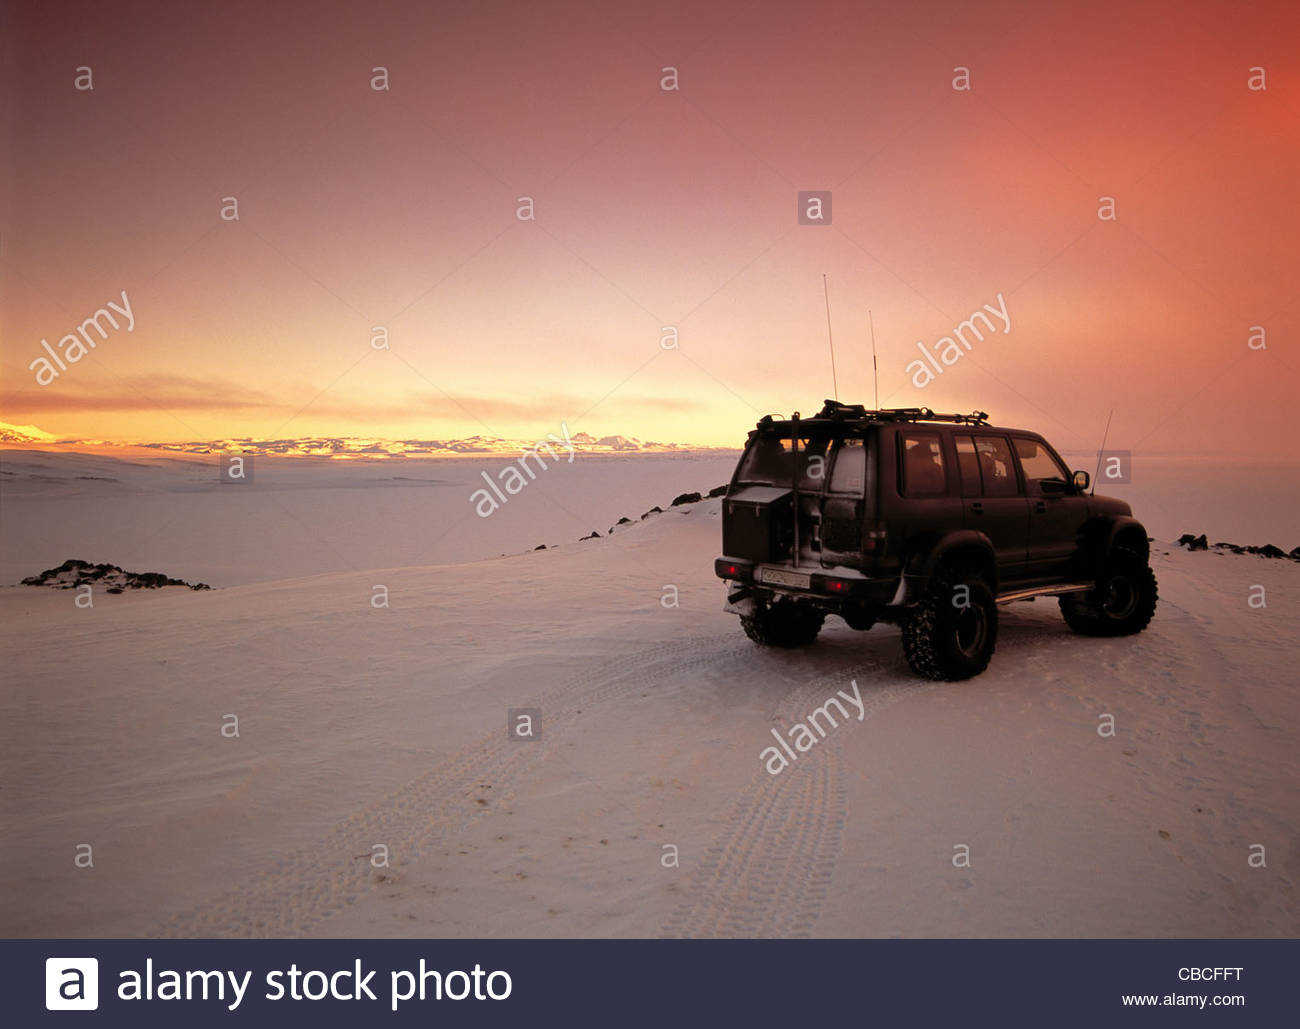 ATV parked in snowy terrain - Stock Image